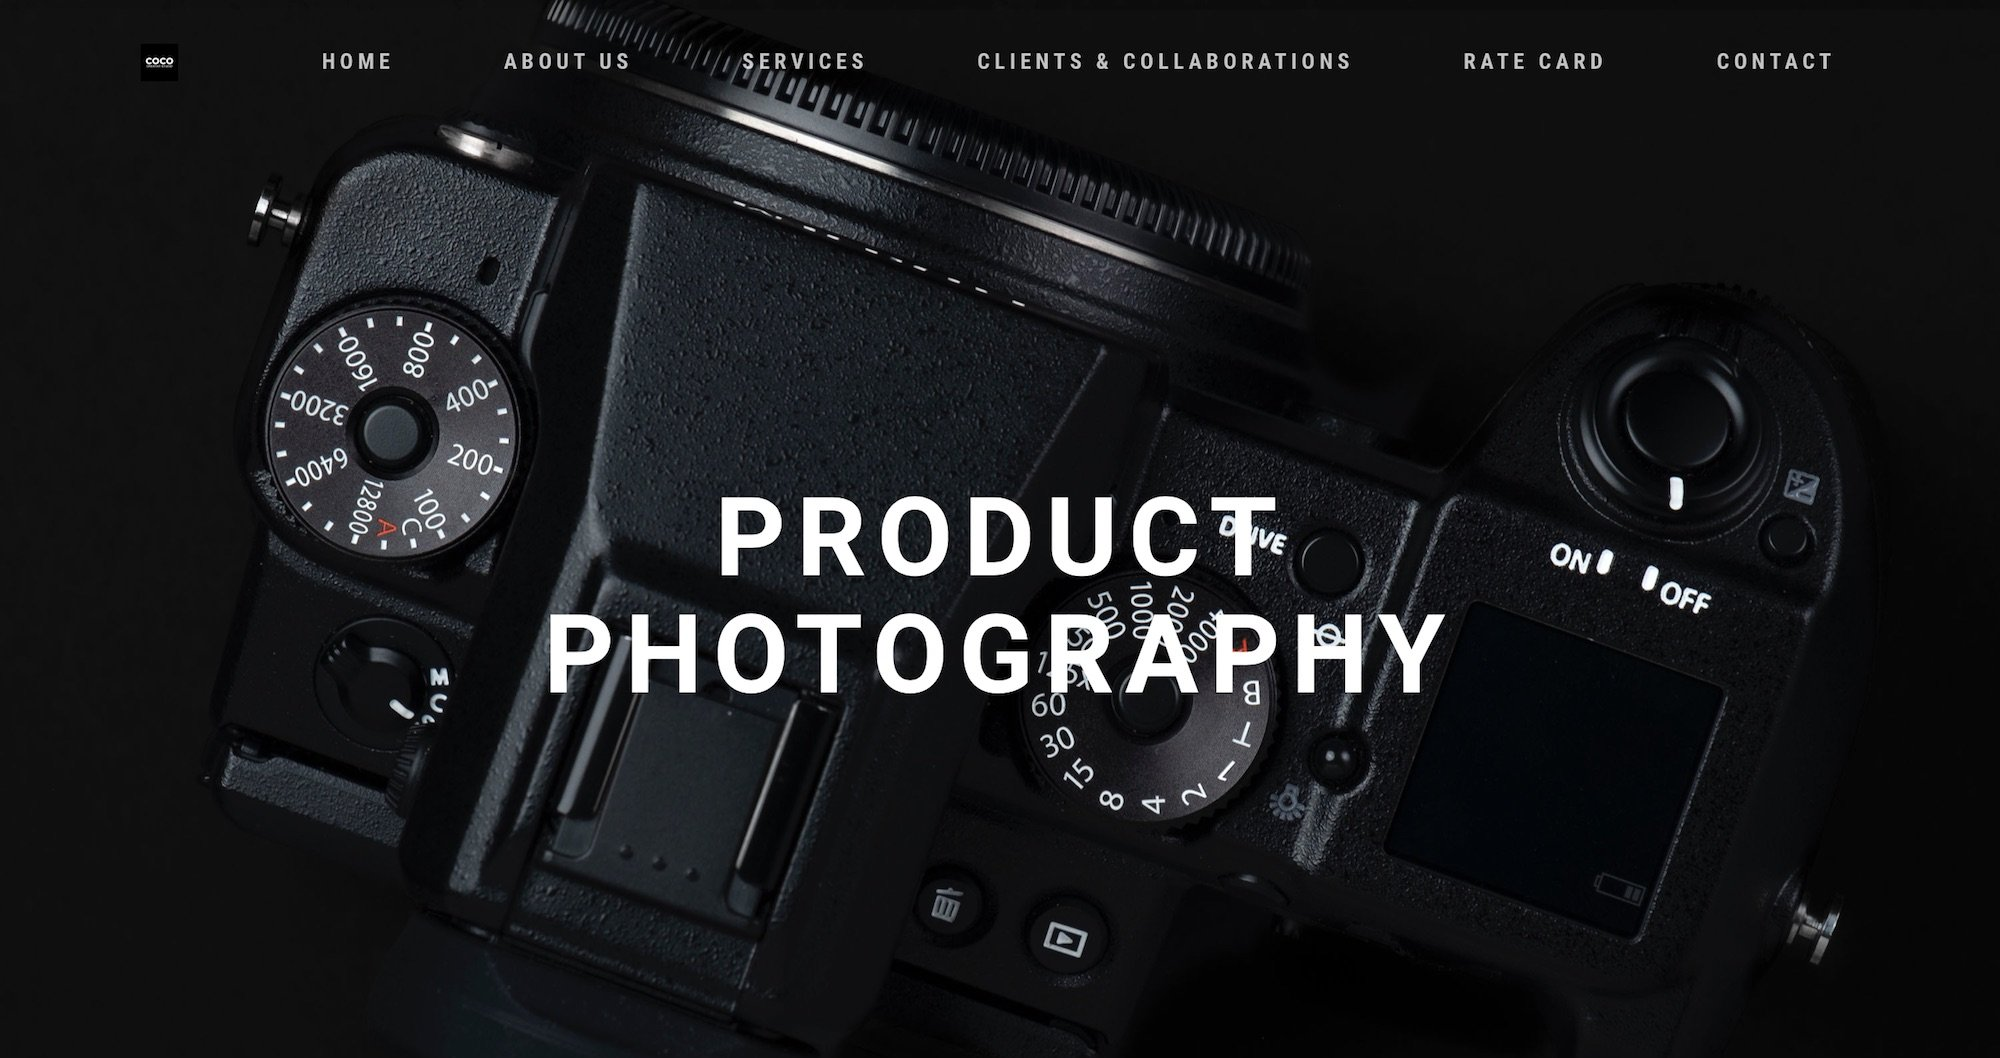 COCO Creative studio photography & videography Singapore - product shot